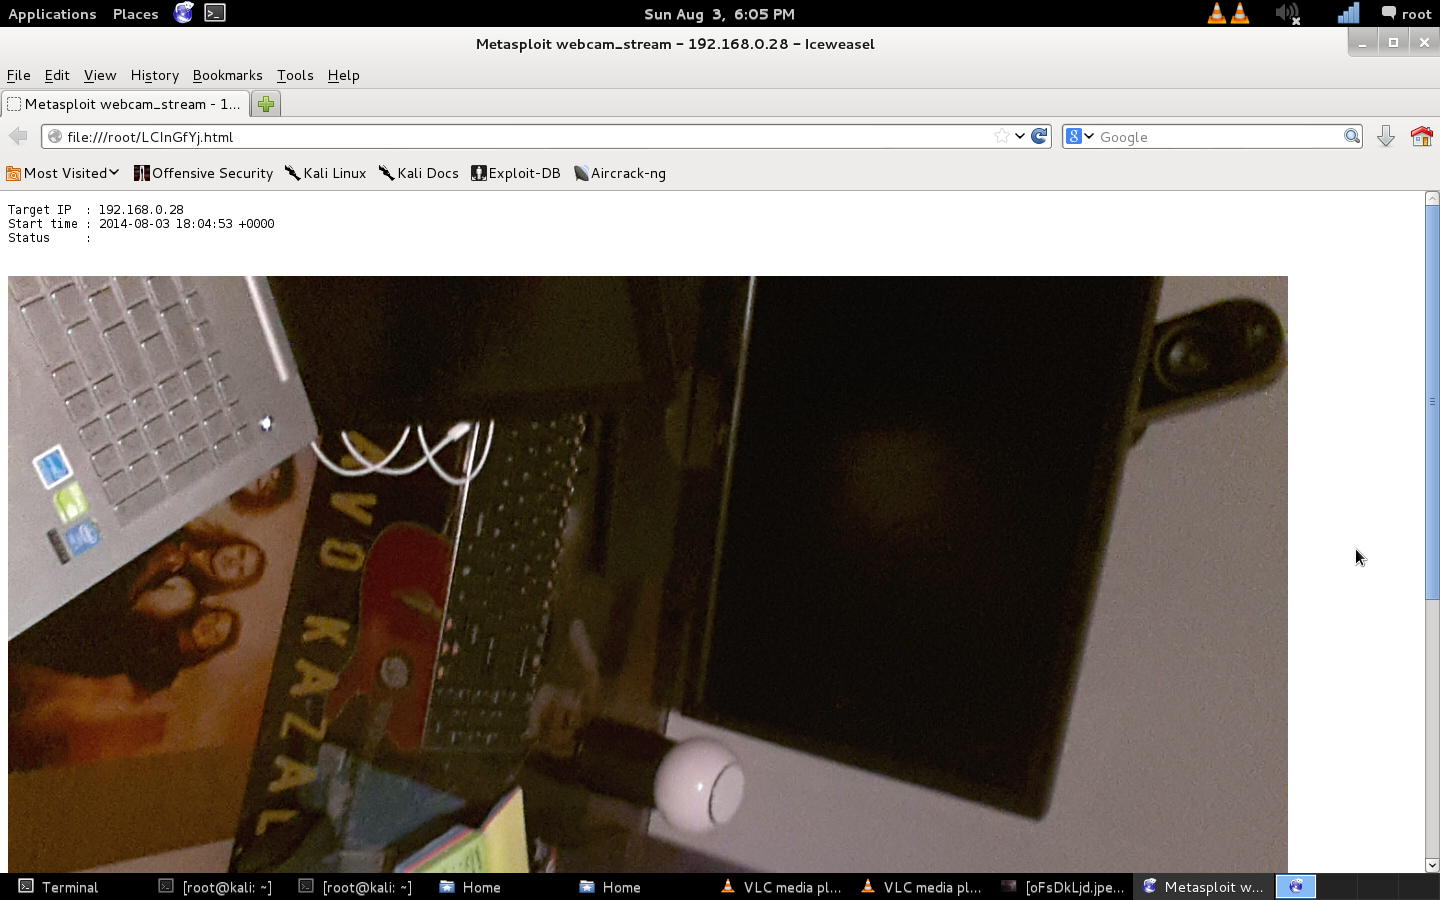 Here's an example of a Metasploit camera stream in action.